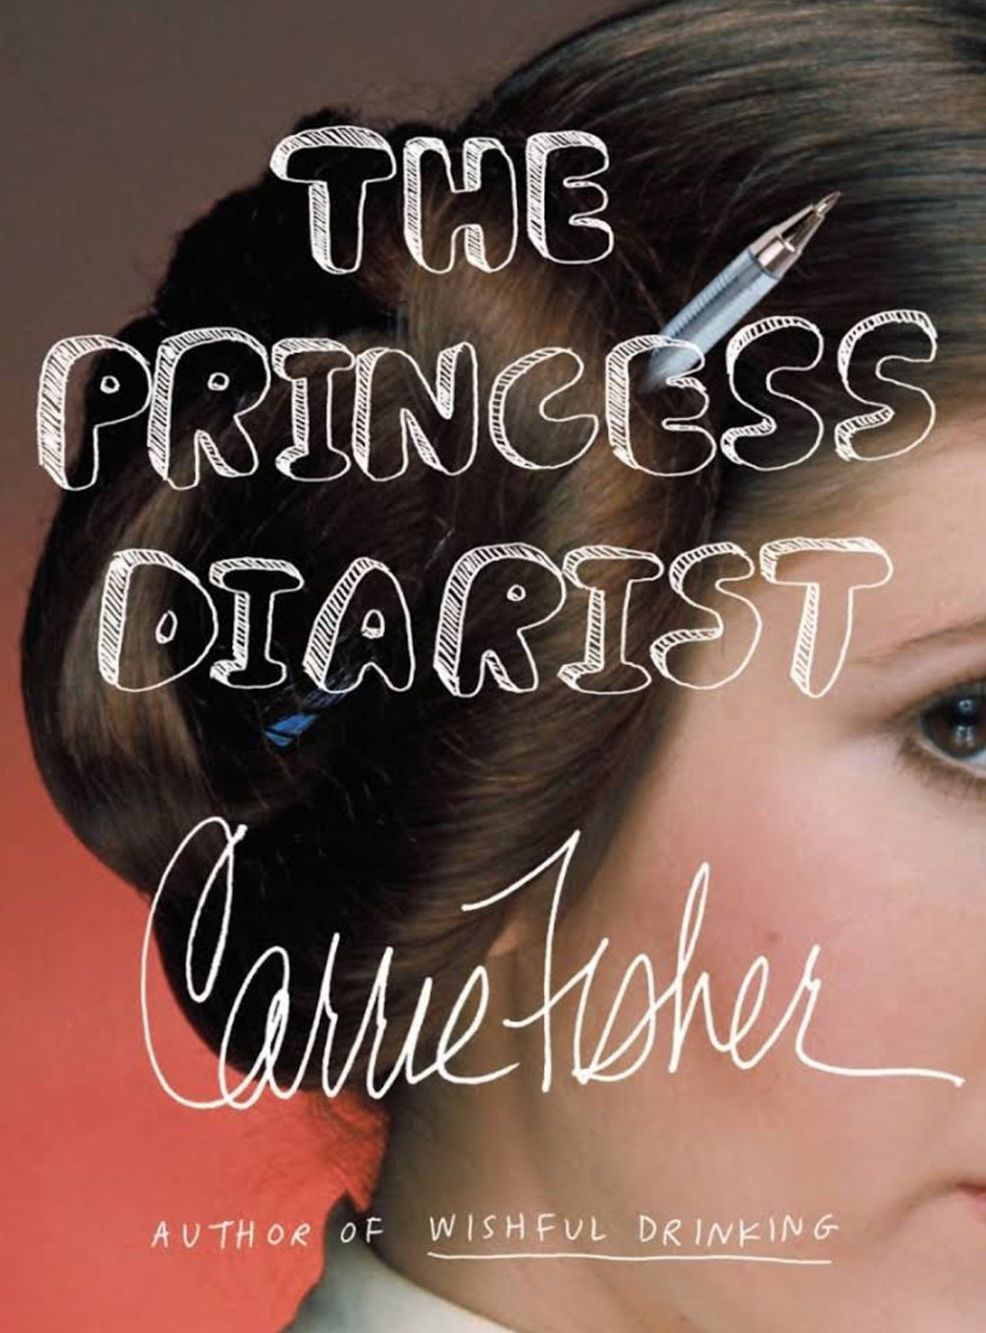 5 Books That Are Nominated for a Grammy Award in 2018: 1) The Princess Diarist by Carrie Fisher